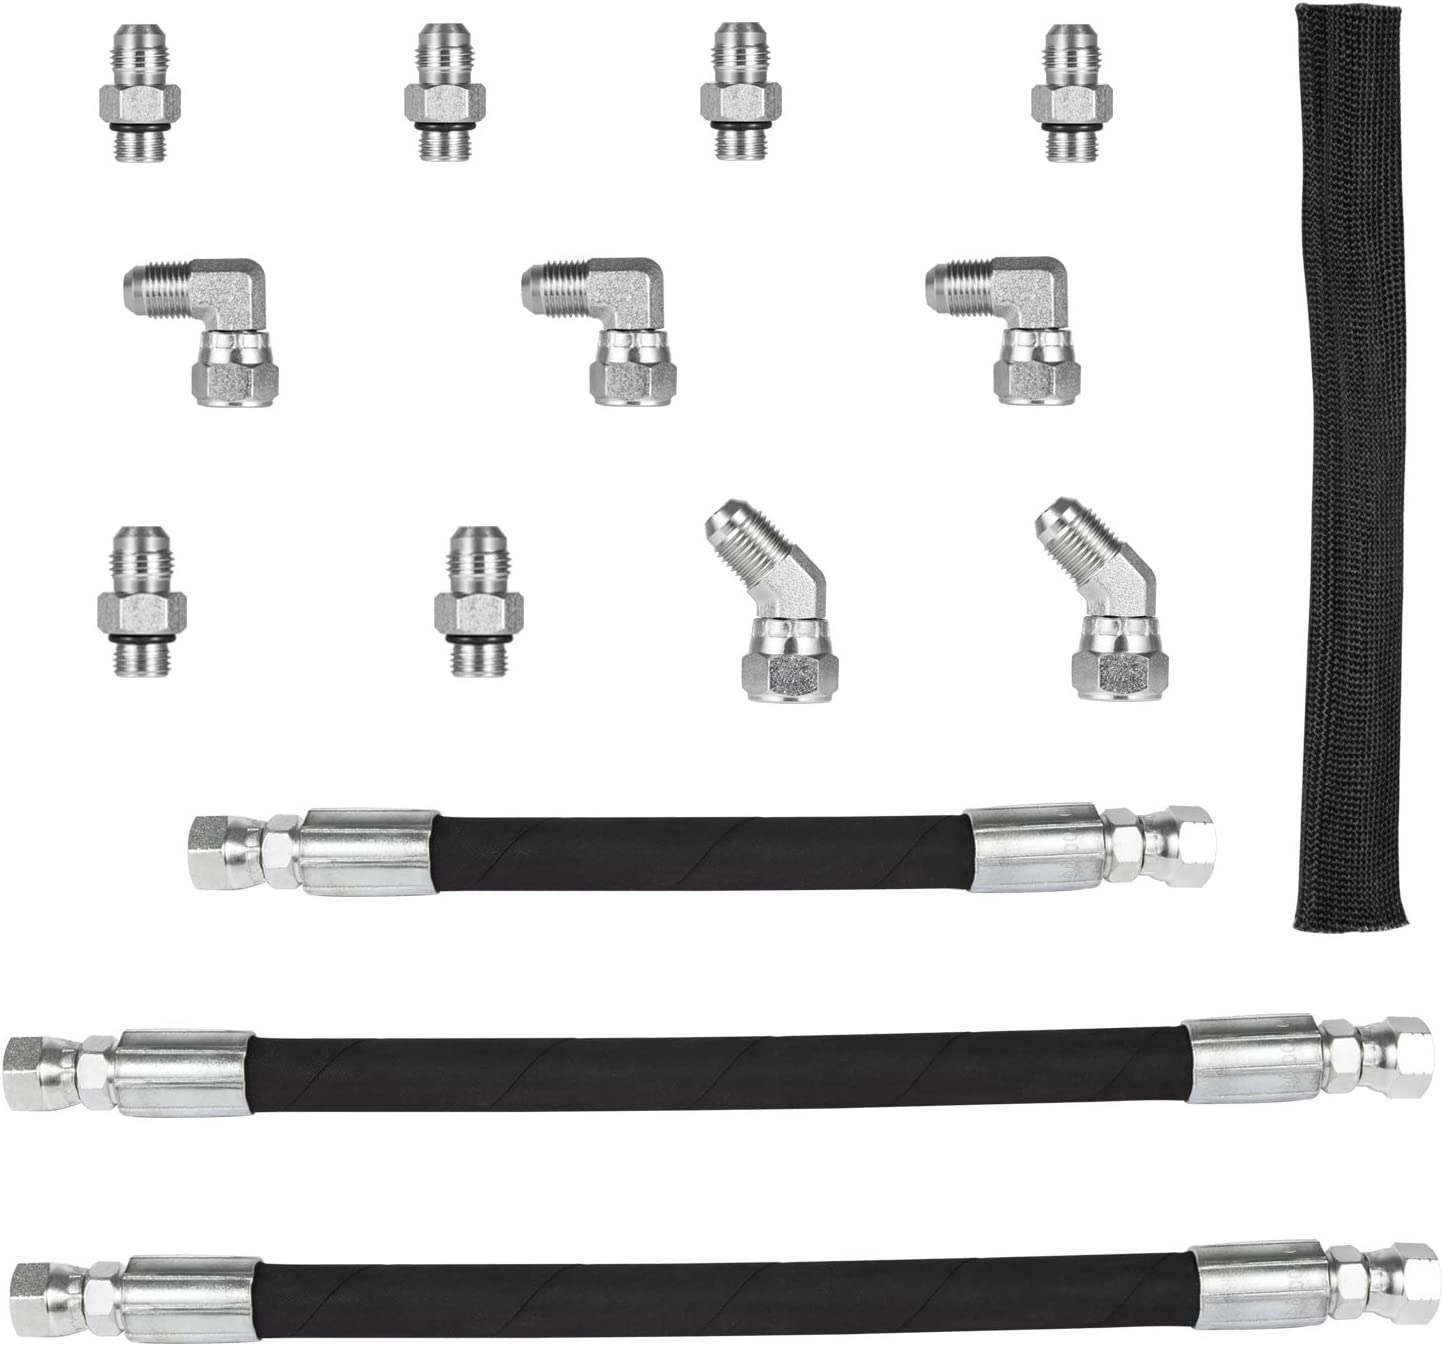 Camoo High Pressure Oil Pump HPOP Hoses Lines /& Crossover Kit Fits for 1999-2003 Ford 7.3L Powerstroke